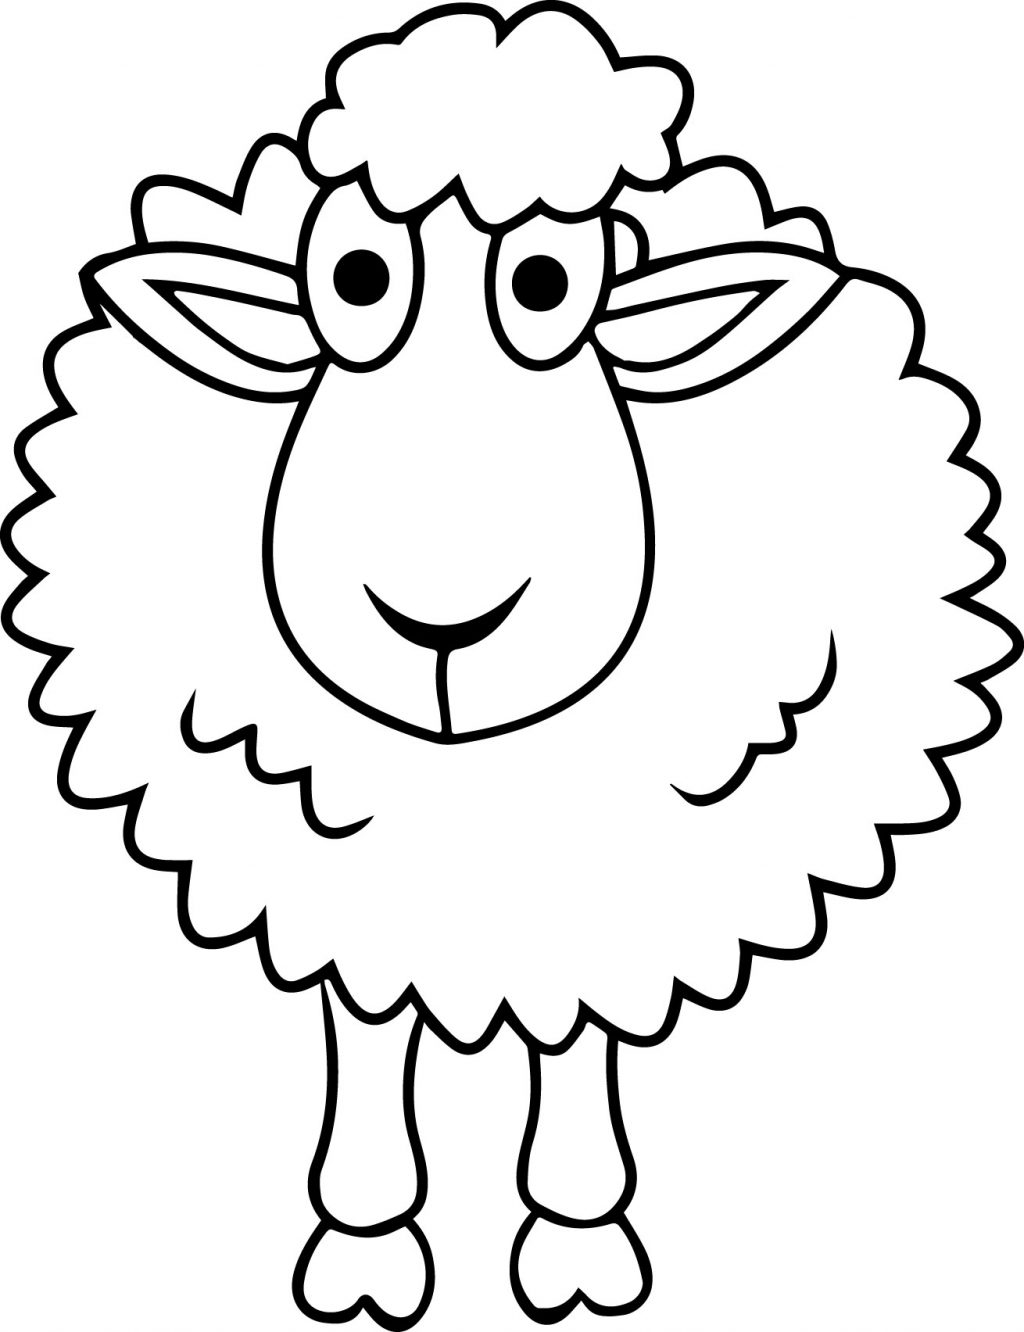 sheep head coloring page coloring page toy sheep head sheep coloring page